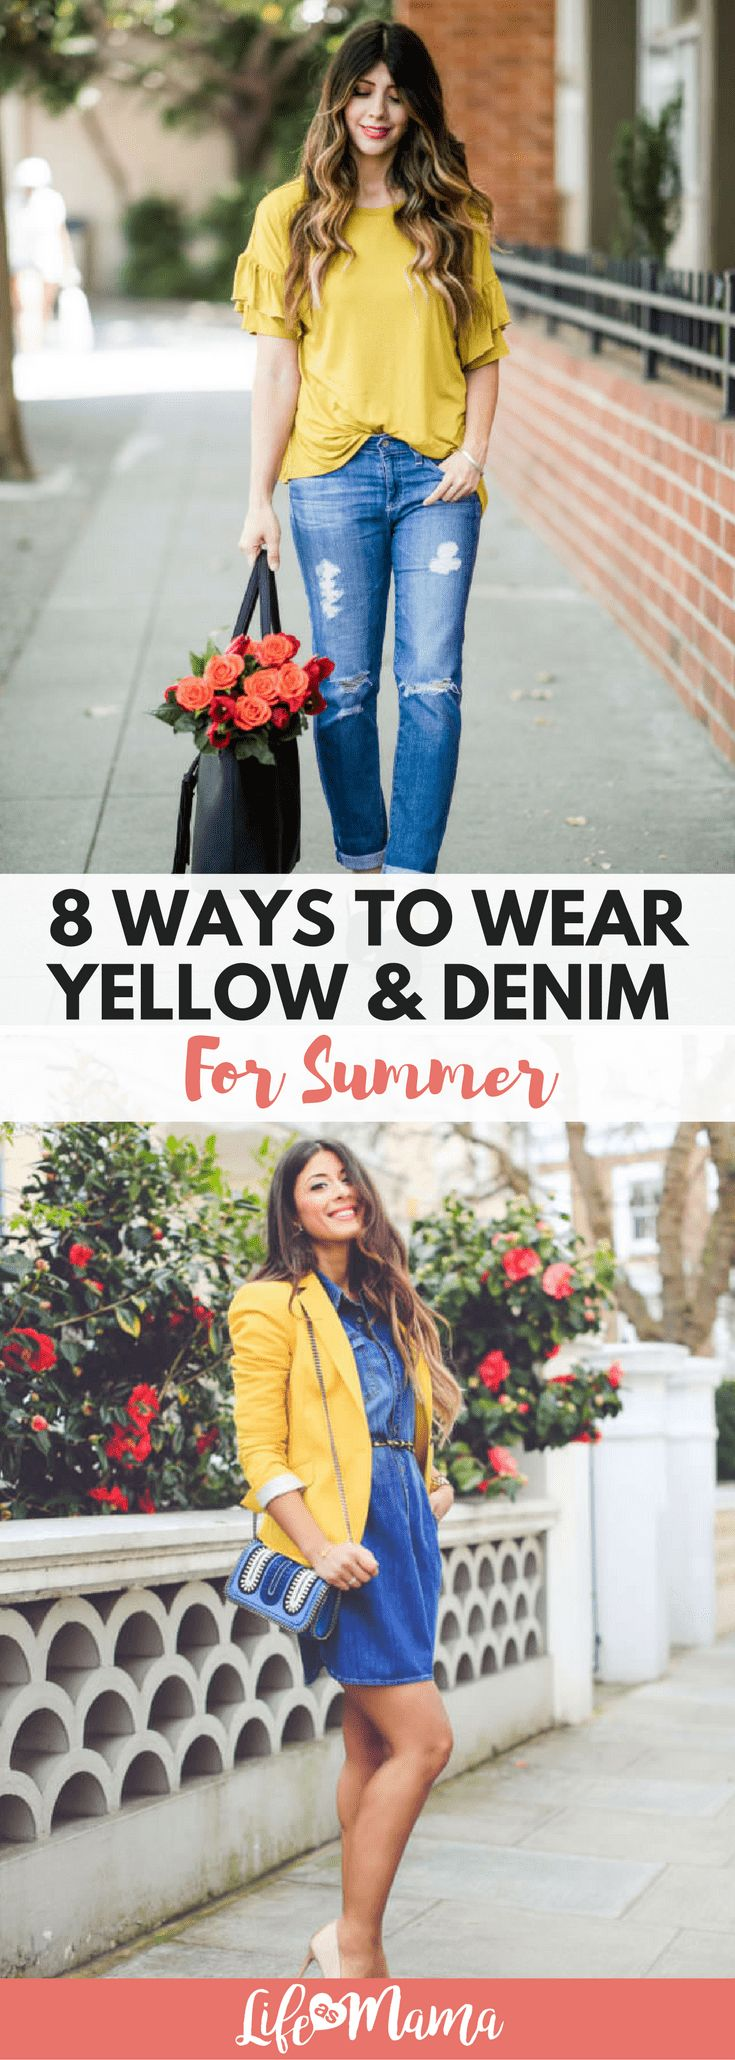 The contrast of vibrant yellow and the durable texture of denim are a killer team. Here are 8 ways to rock this duo in the summer.